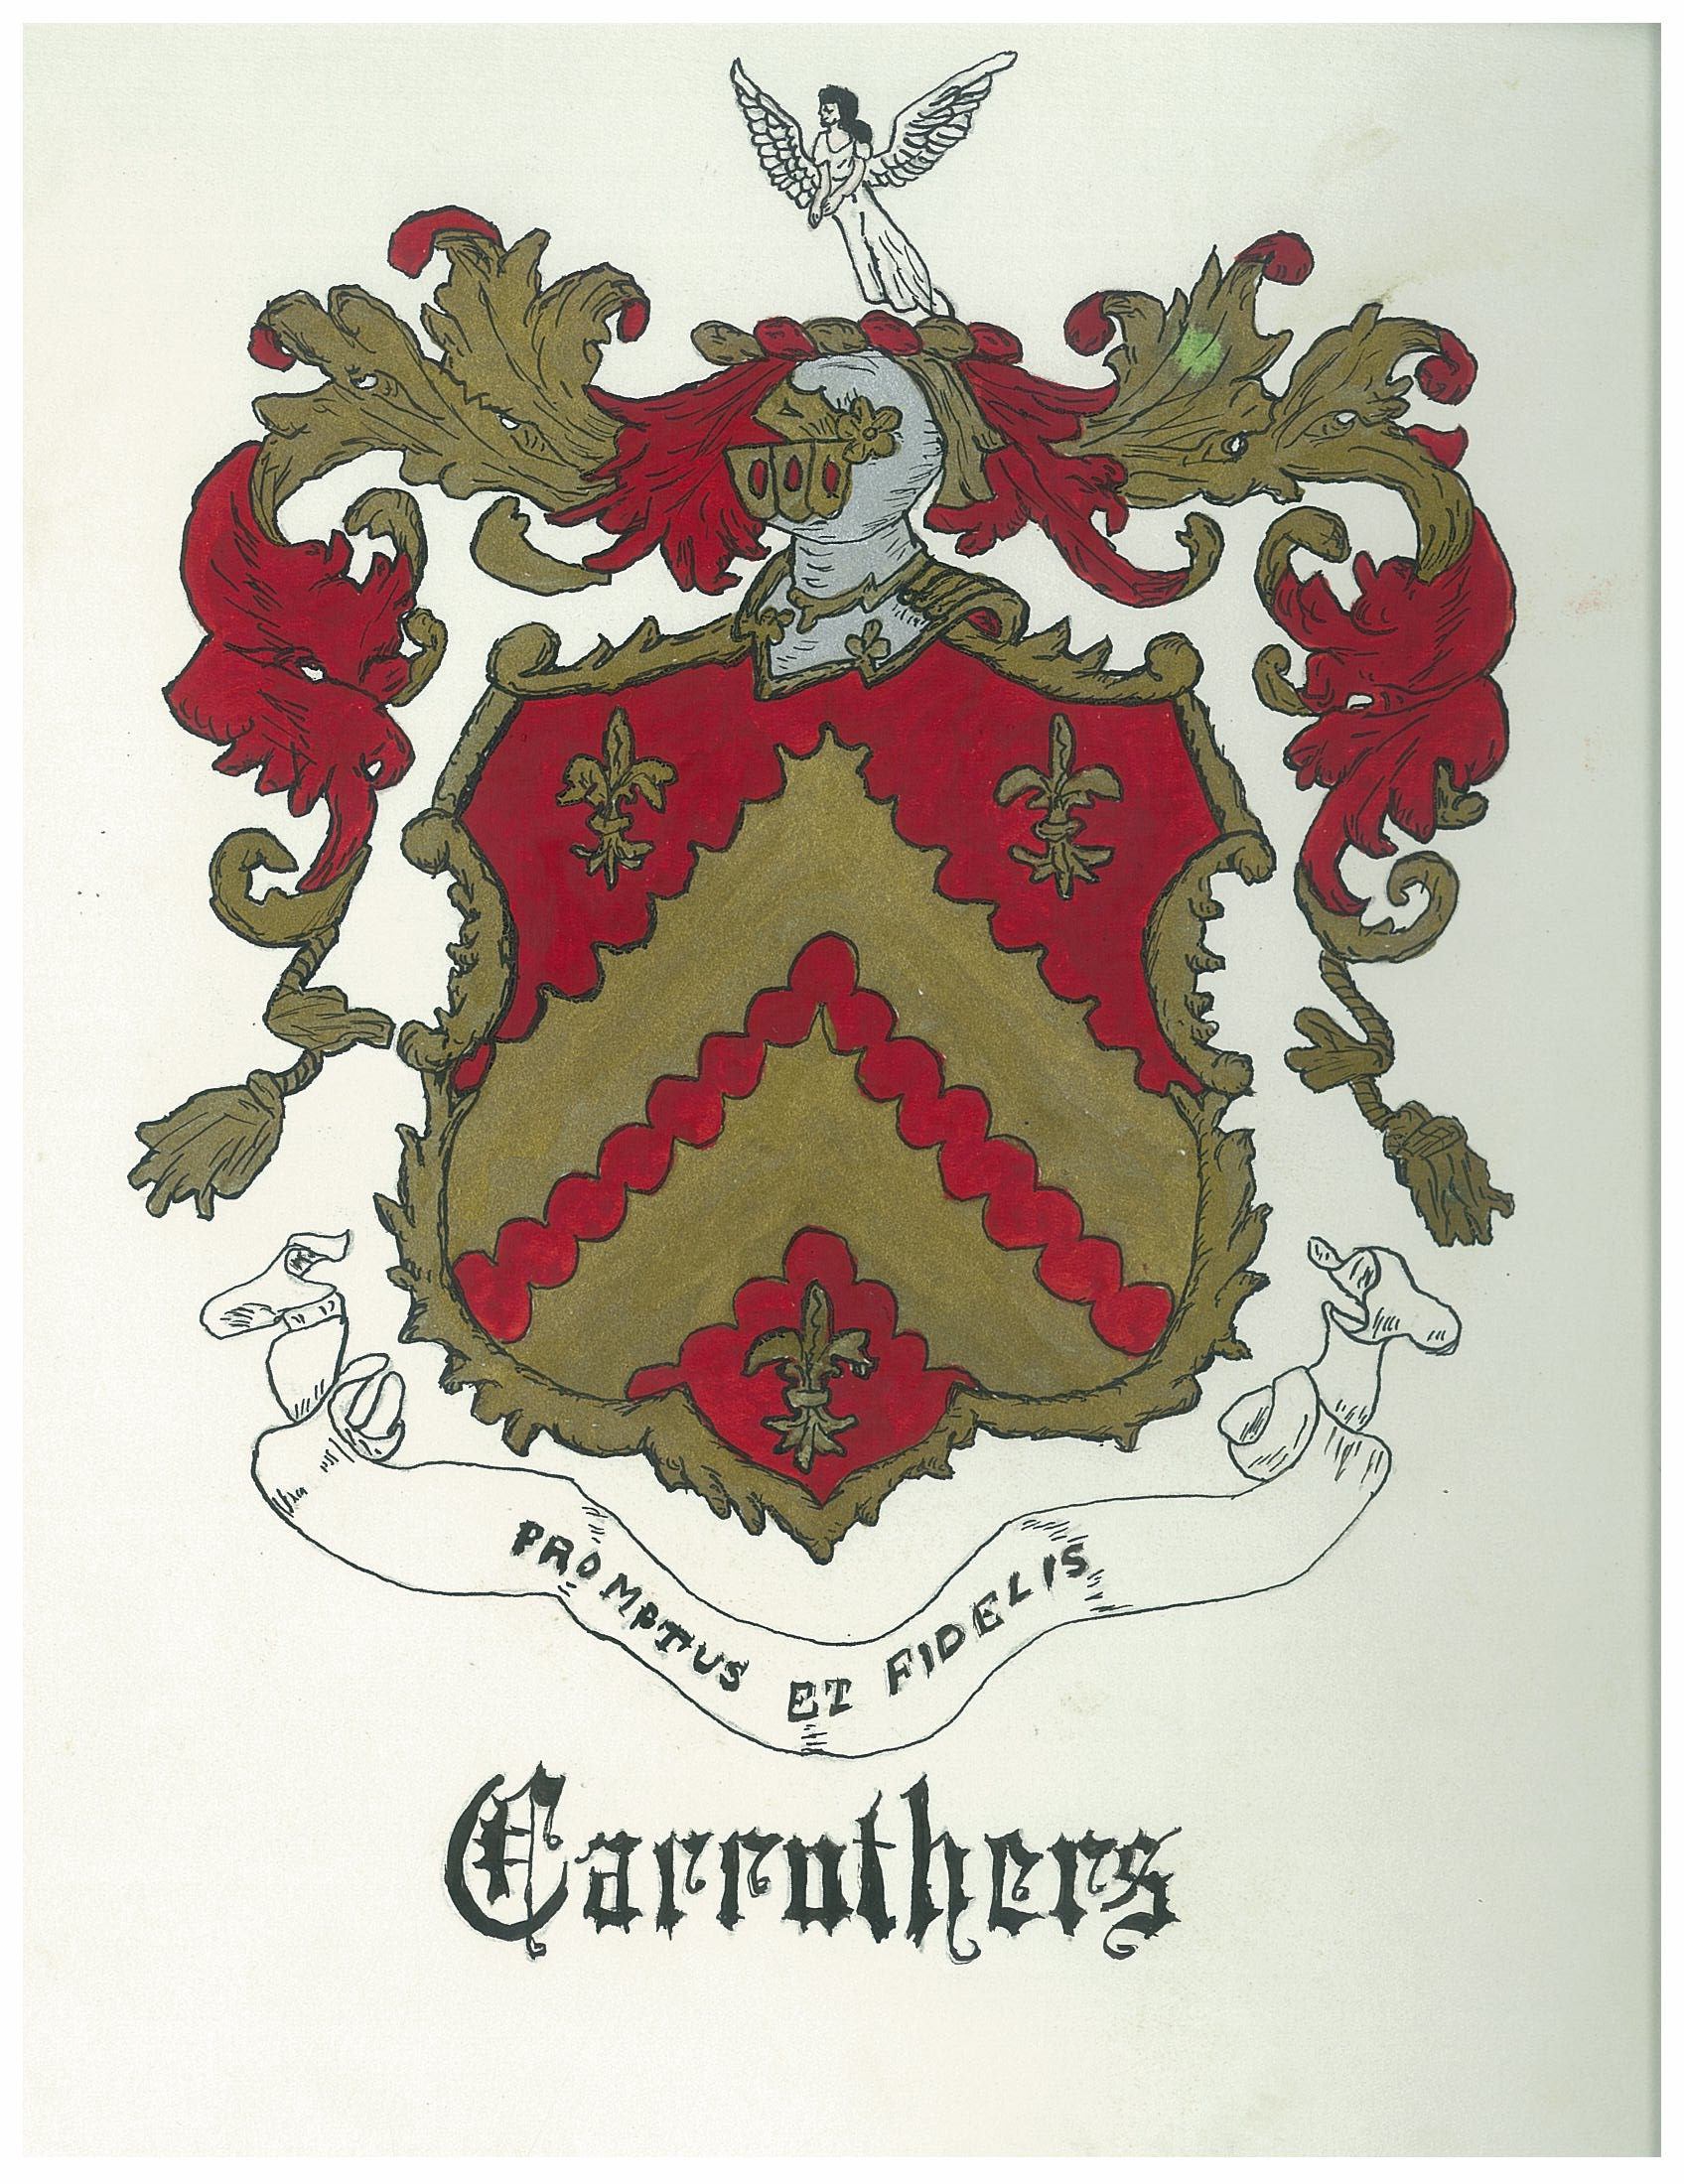 Carruthers Coat of Arms